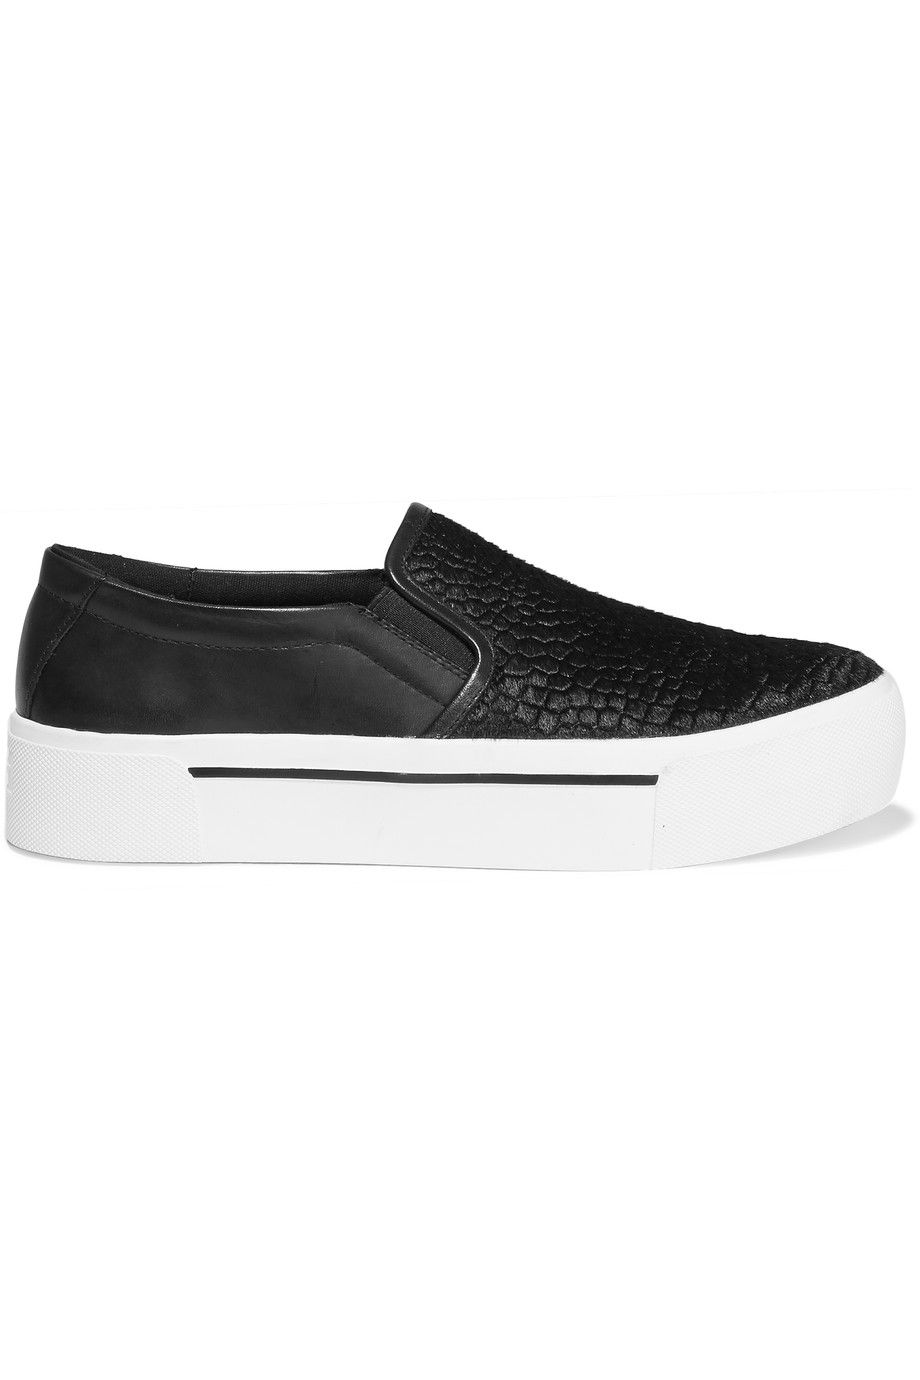 DKNY Bess Embossed Calf Hair And Leather Sneakers. #dkny #shoes #sneakers